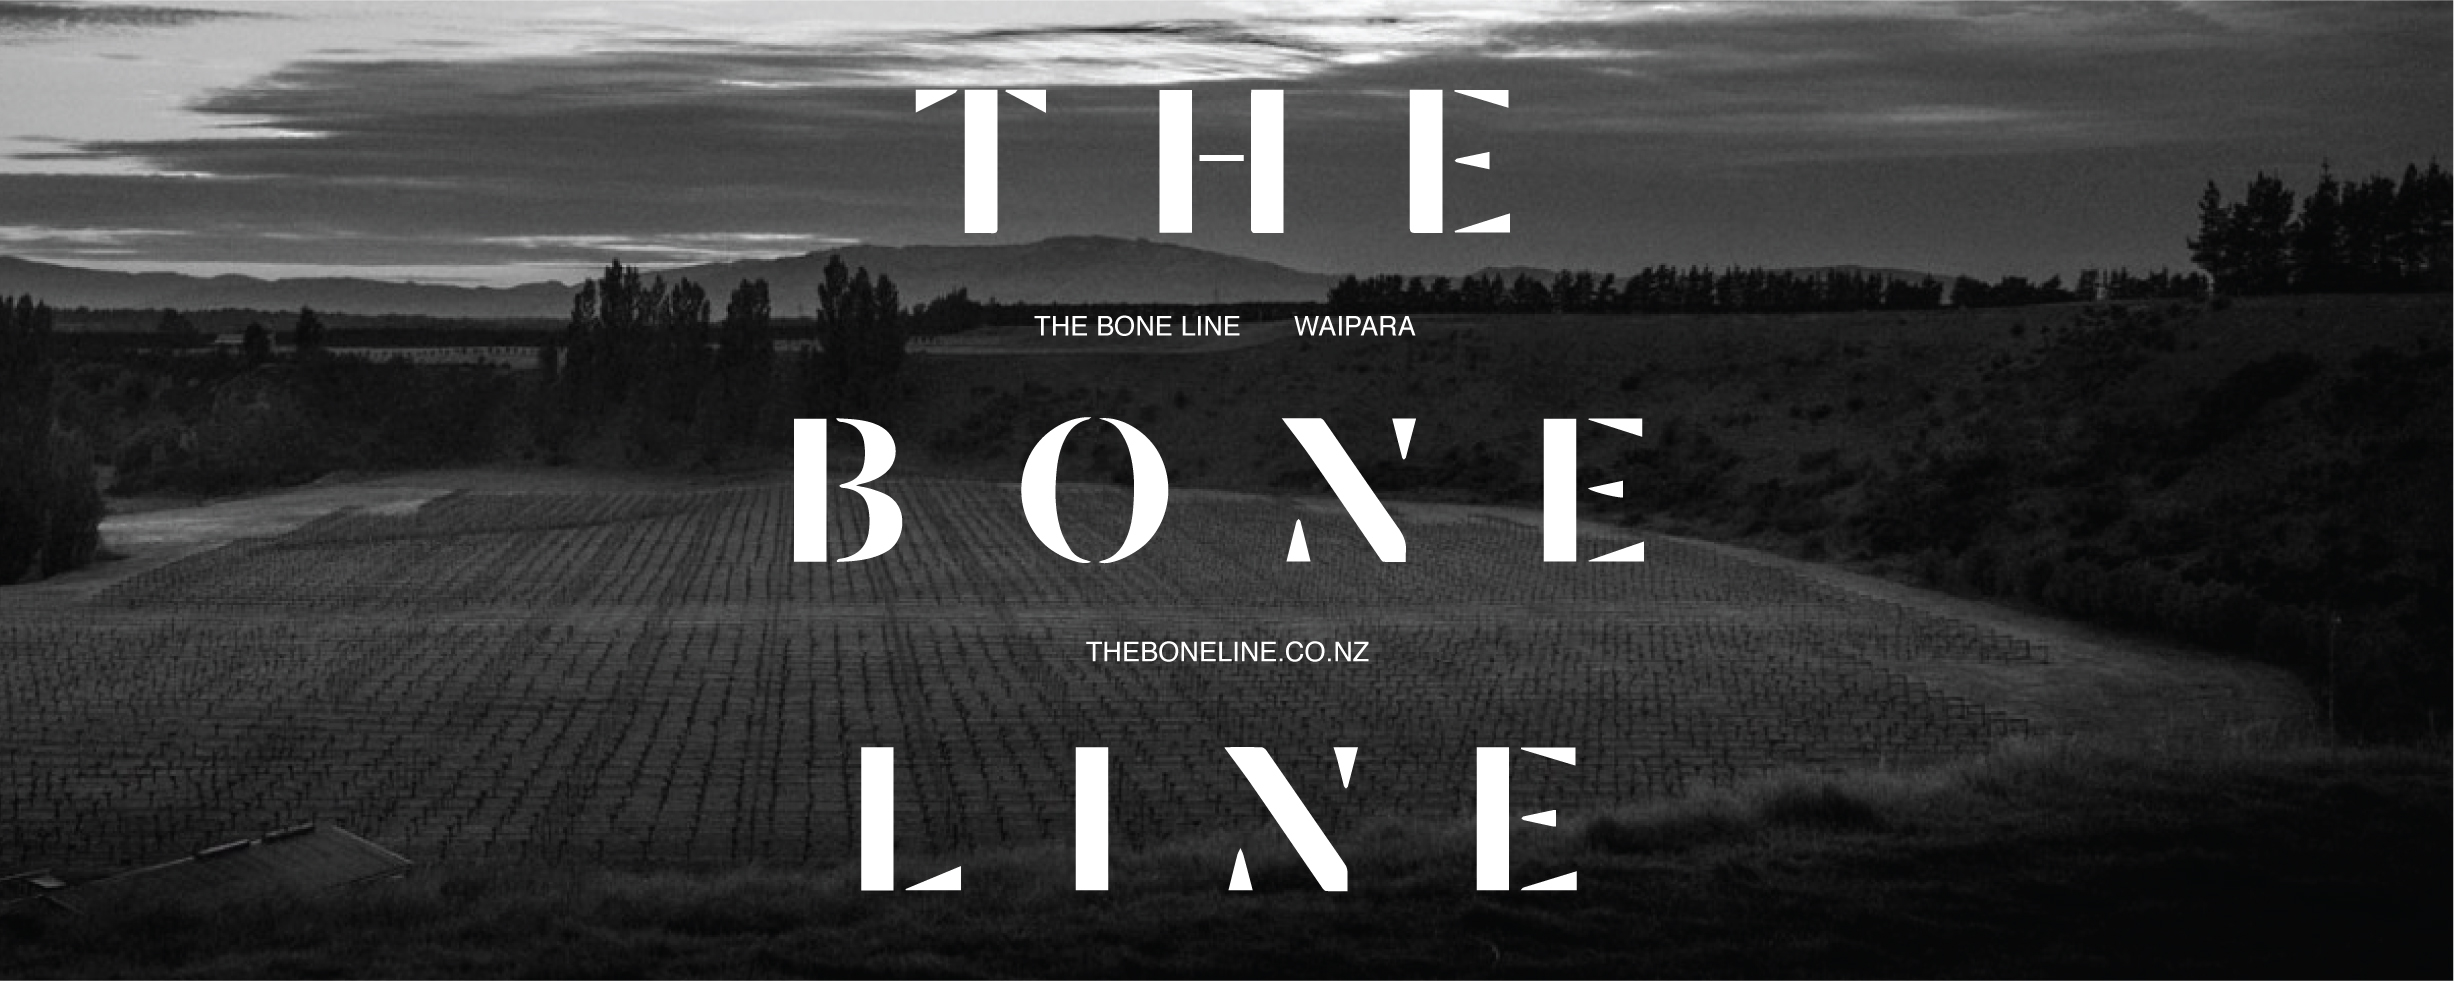 THE BONE LINE    WAIPARA, NZ   The Boneline is situated deep in the Waipara Valley, snuggled in the lee of the Teviotdale hills that provide protection from cool easterly winds but open to warming north west winds. The protective Southern Alps ensure low rainfall, abundant sunshine and often very warm summers, helped by the famed hot, dry nor'wester winds, though cooling sea breezes and the occasional cold southerly fronts temper this. Drought risk is mitigated by irrigation. Canterbury's long dry autumns coupled to good diurnal variance help provide phenolic ripeness, complexity and a variety of styles.  Named in reference to the K-T Boundary line which runs through the Waipara Valley near their vineyard, each of the wines made by The Bone Line features dinosaur fossils found in the area. Dating back as far as 65 million years, these serve as evidence of the global catastrophe of an asteroid impact on the earth and the end of the Mesozoic Era and the extinction of the dinosaurs.  These bones represent the tangible connection each wine has with the land where the fruit is grown, old vines and the family partnership of Tutton Sienko & Hill's growing experience.